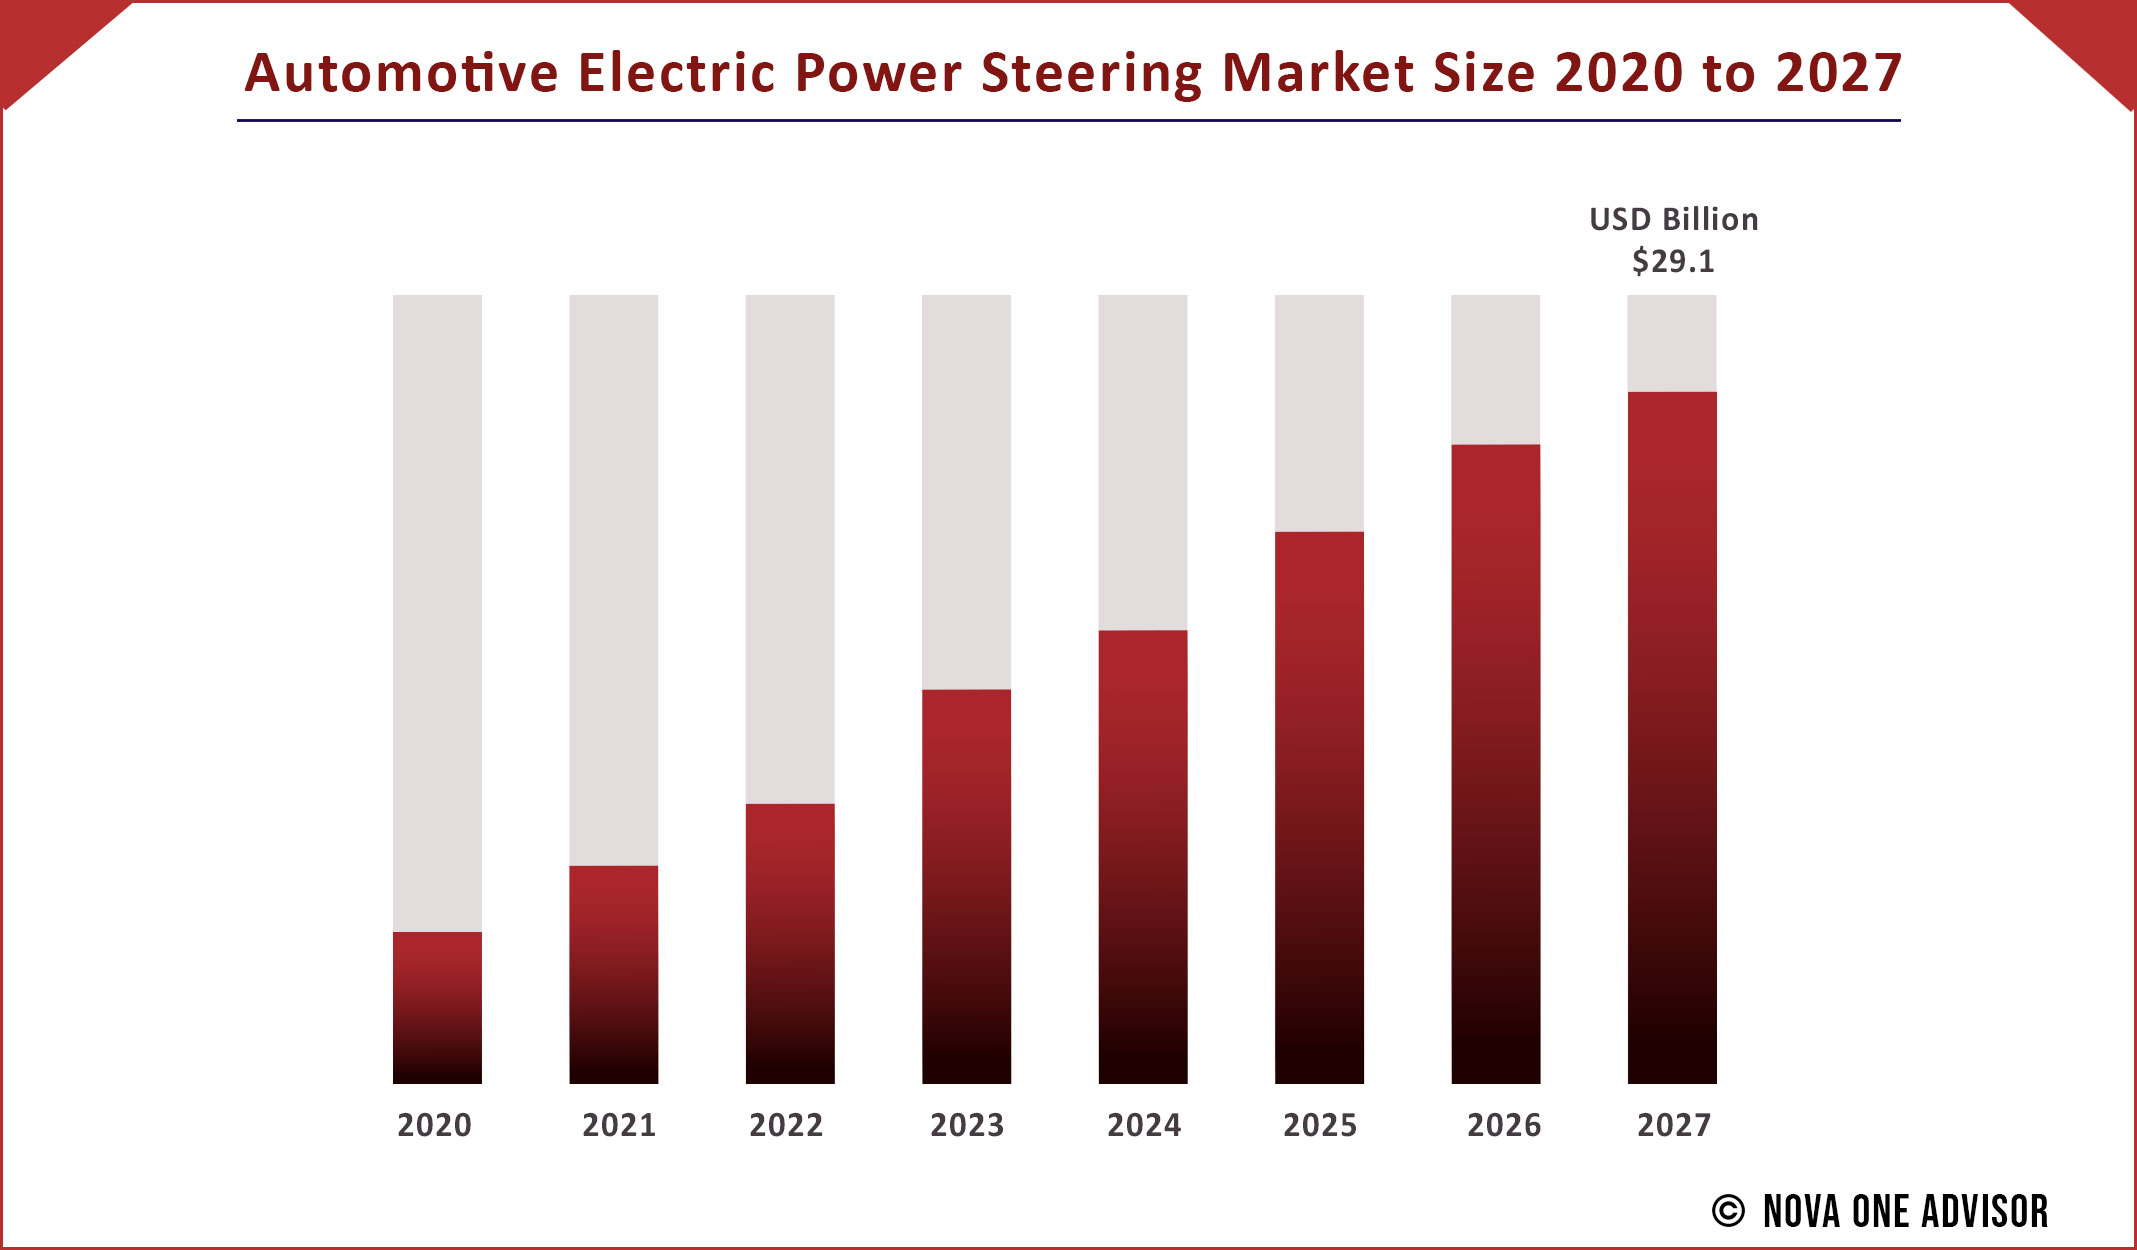 Automotive Electric Power Steering Market Size 2020 to 2027